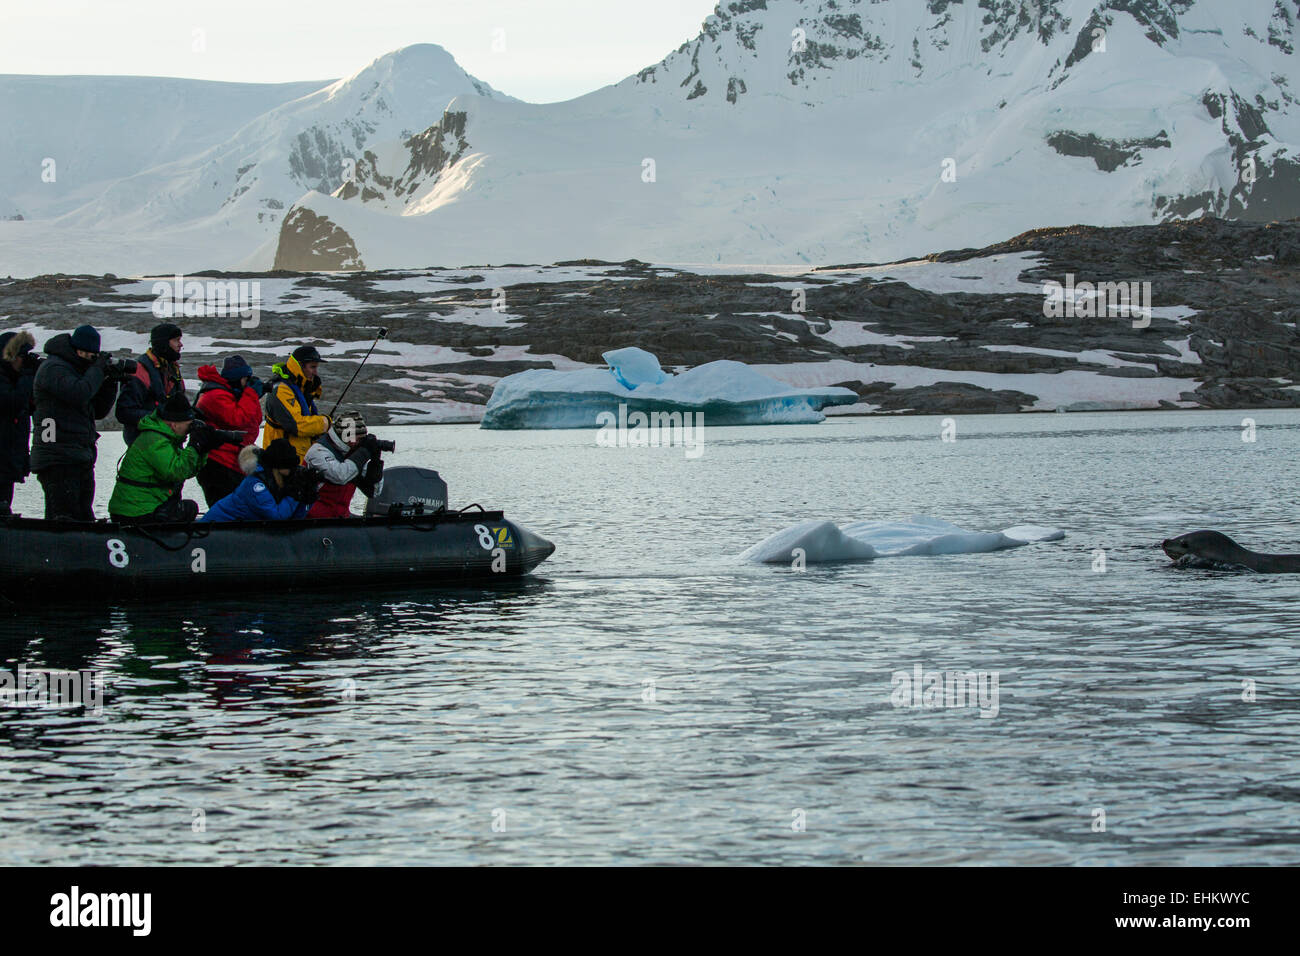 photographers on expedition photographing leopard seal, Pleneau Bay, Antarctica - Stock Image